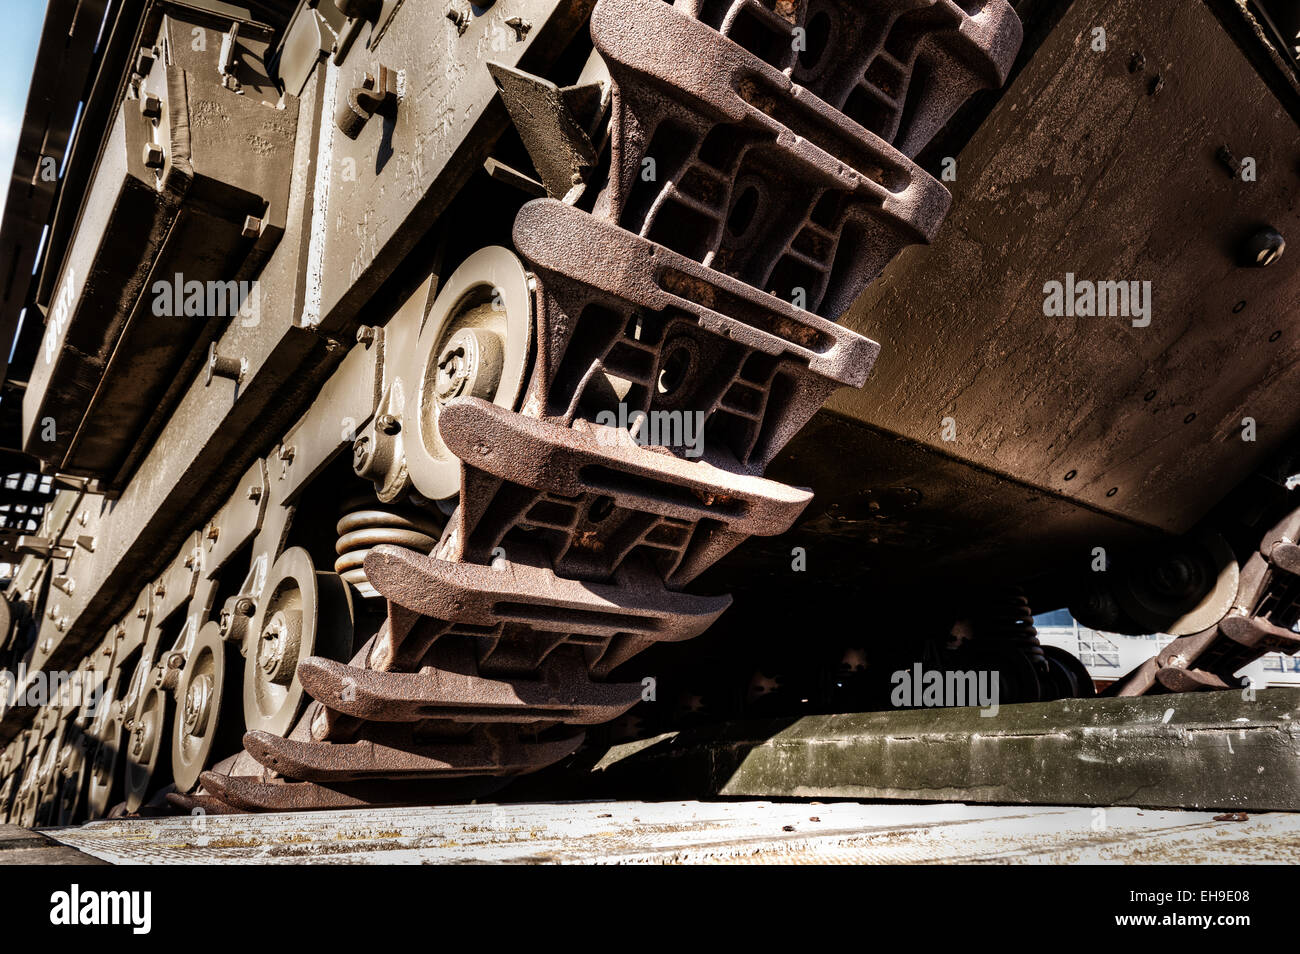 iron caterpillar racks of army tanks that have seen battle waiting to be called back into service and duty - Stock Image